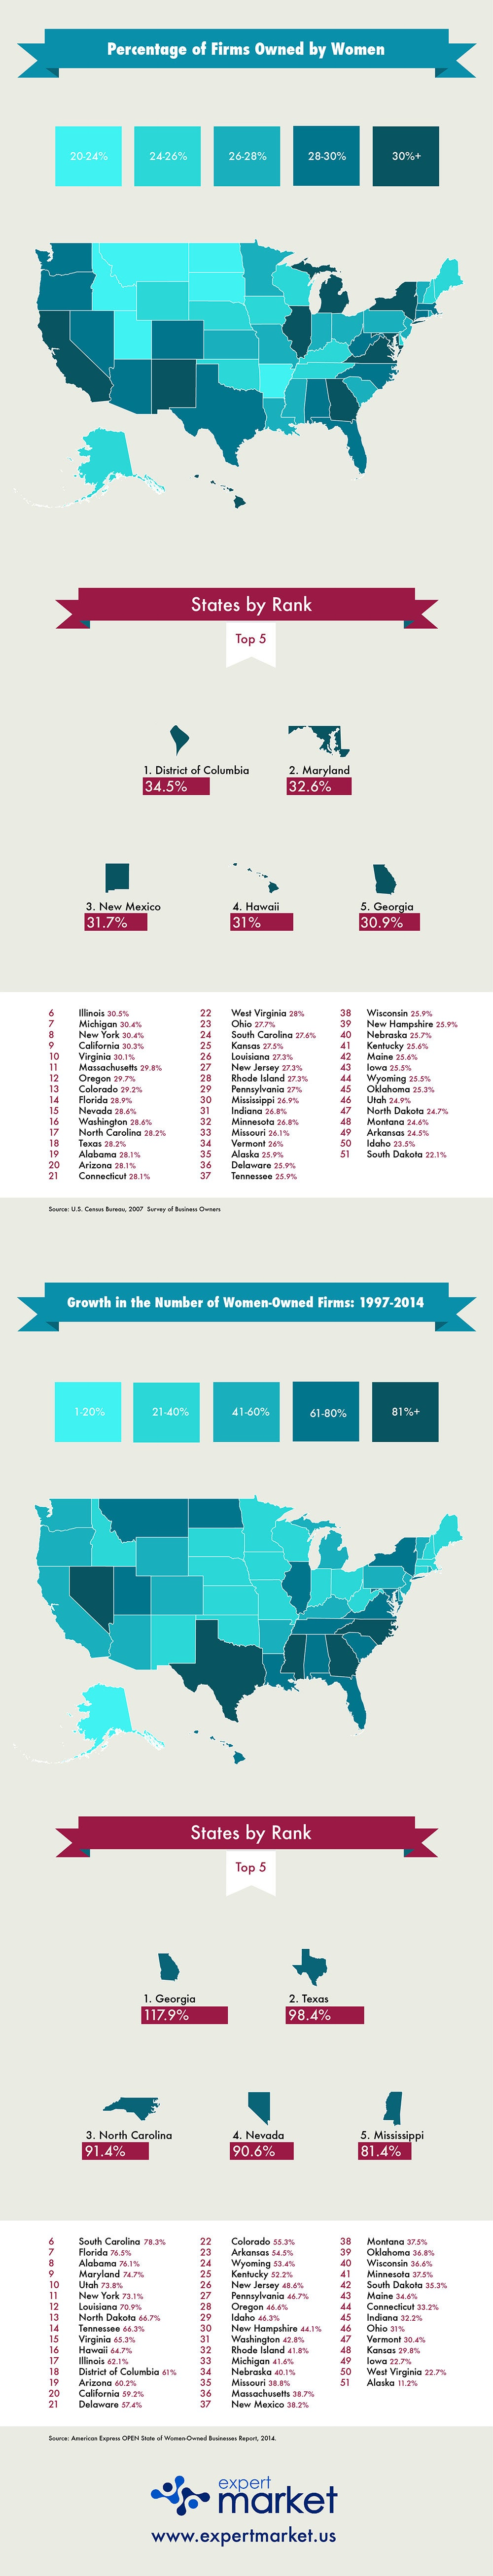 You'll Never Guess Where Female Entrepreneurship Is On the Rise (Infographic)